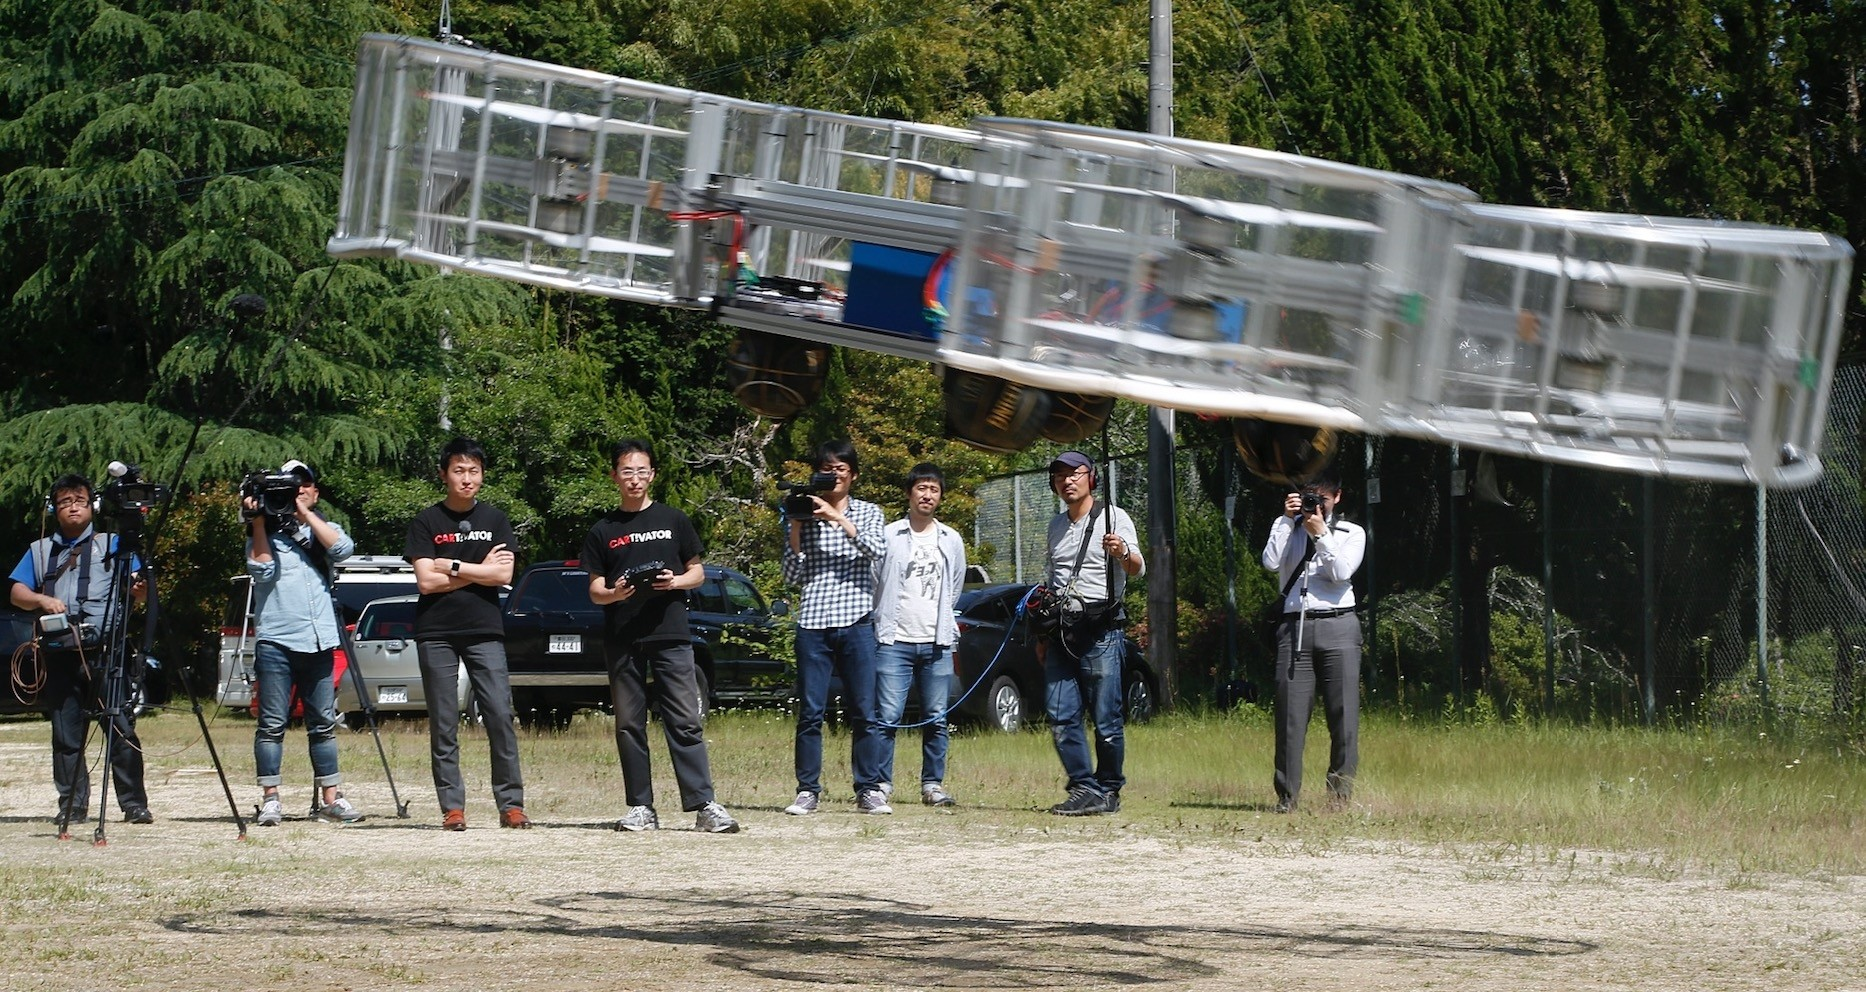 Tsubasa Nakamura, project leader of Cartivator, third from left, watches the flight of the test model of the flying car on a former school ground in Toyota, central Japan.